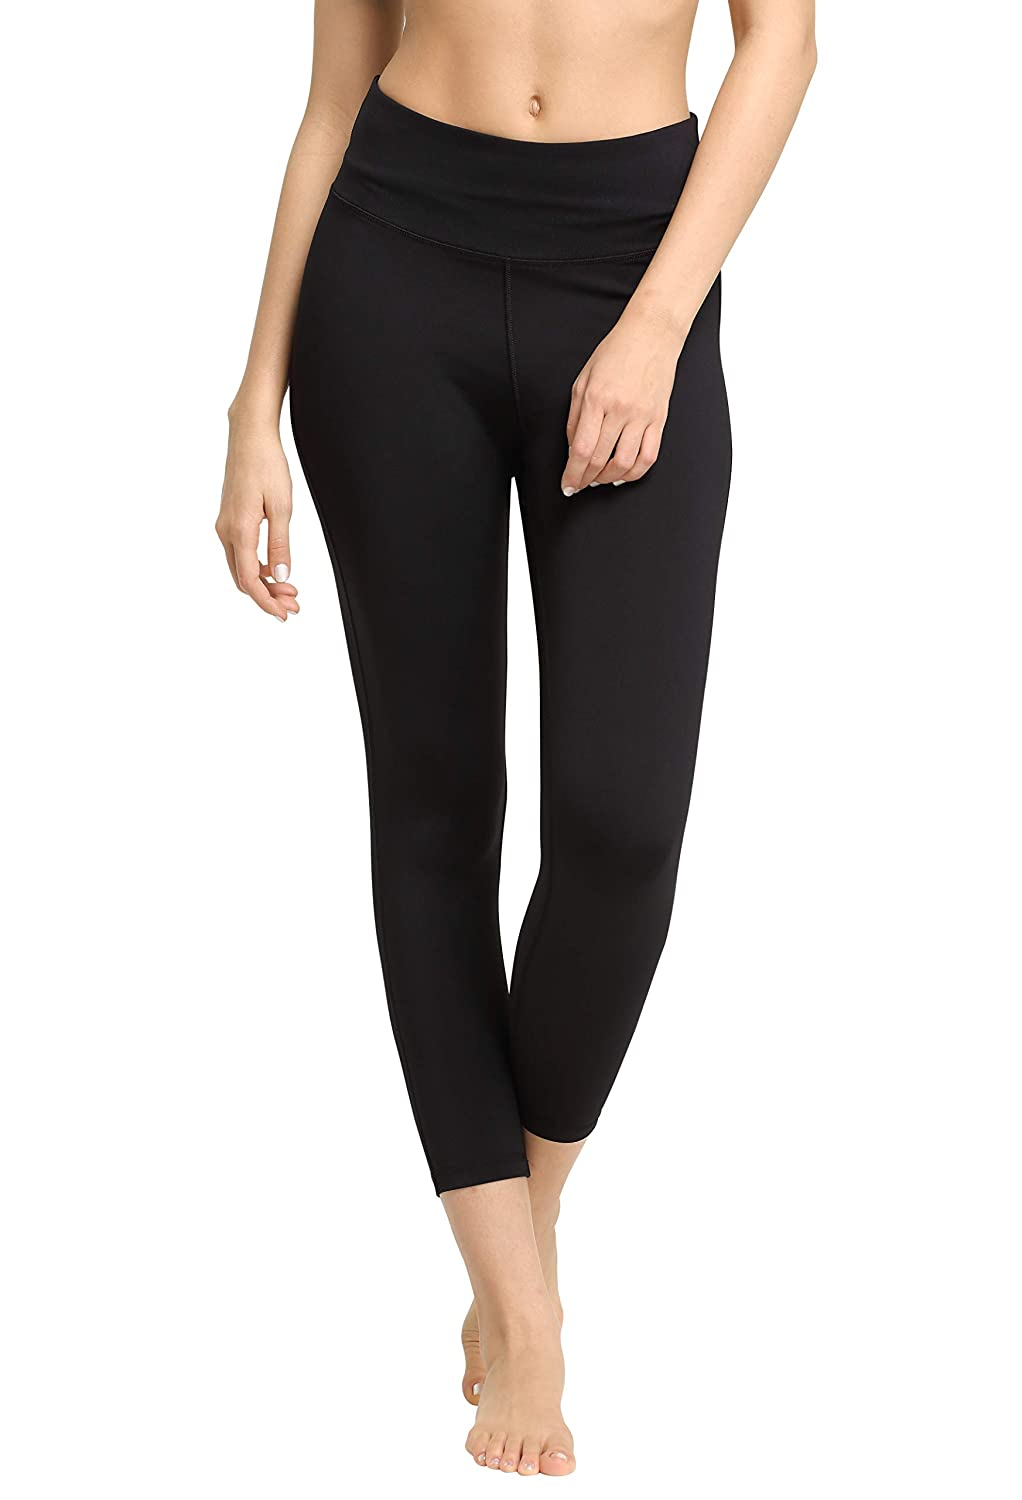 7dc71e3f7eeabe Amazon.com: CYZ Women's Space-Dyed Tummy Control Yoga Workout Leggings with Cell  Phone Pocket: Clothing